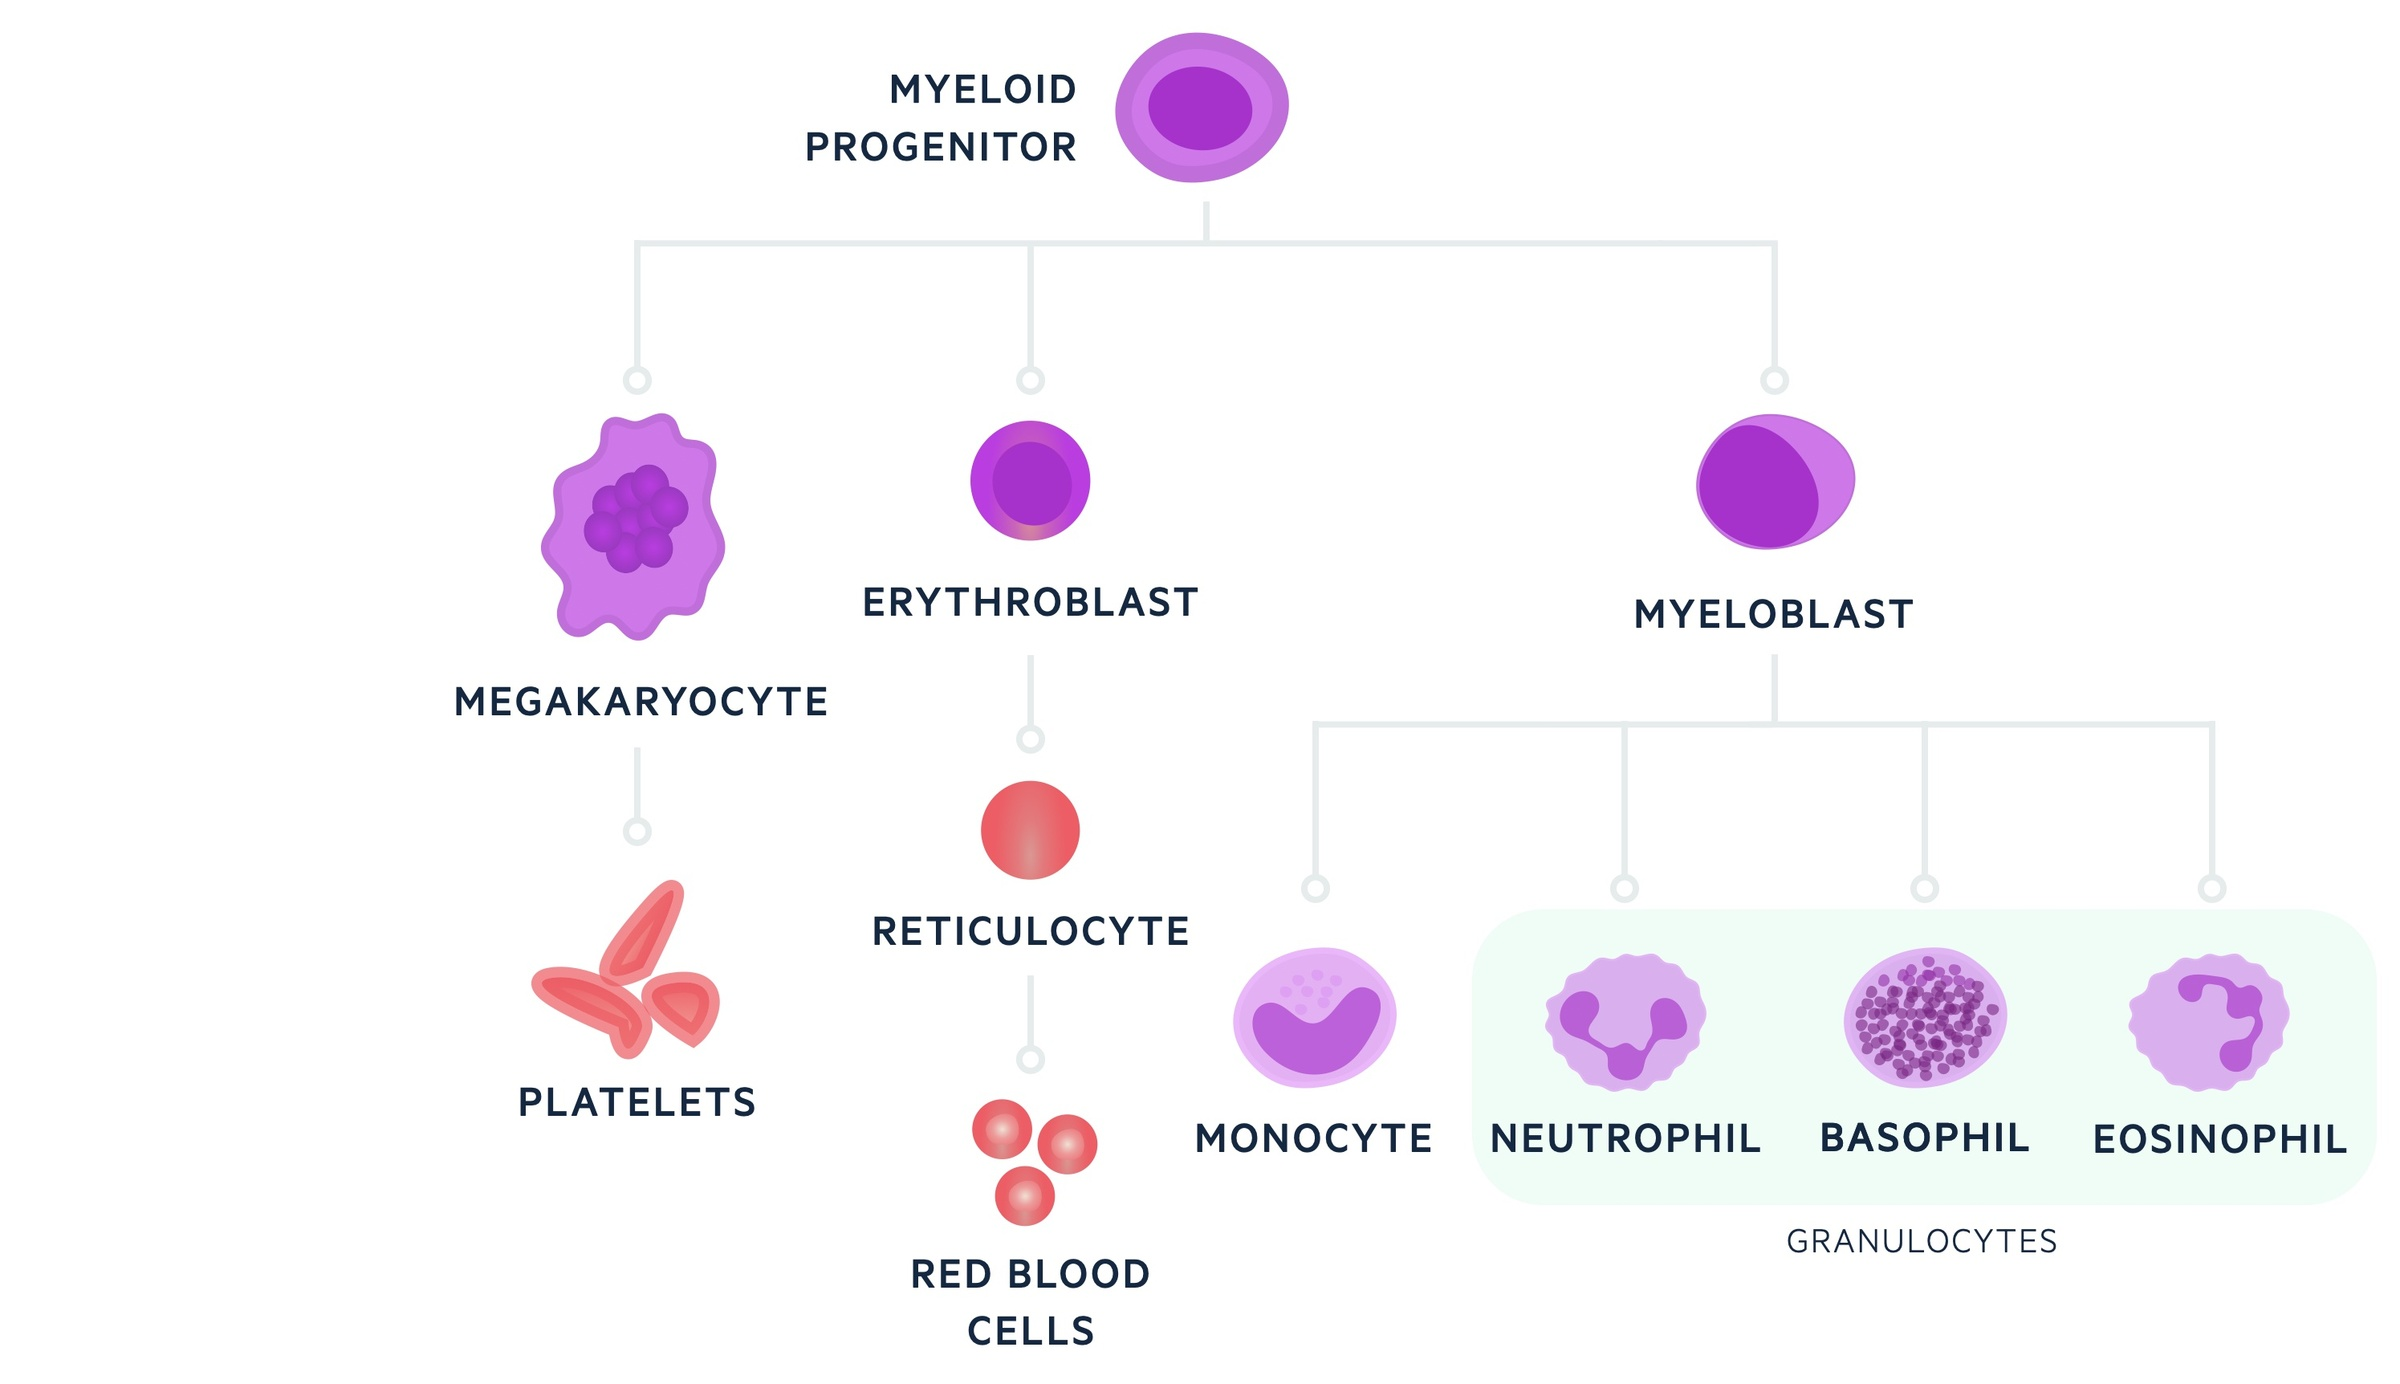 Myeloid lineage